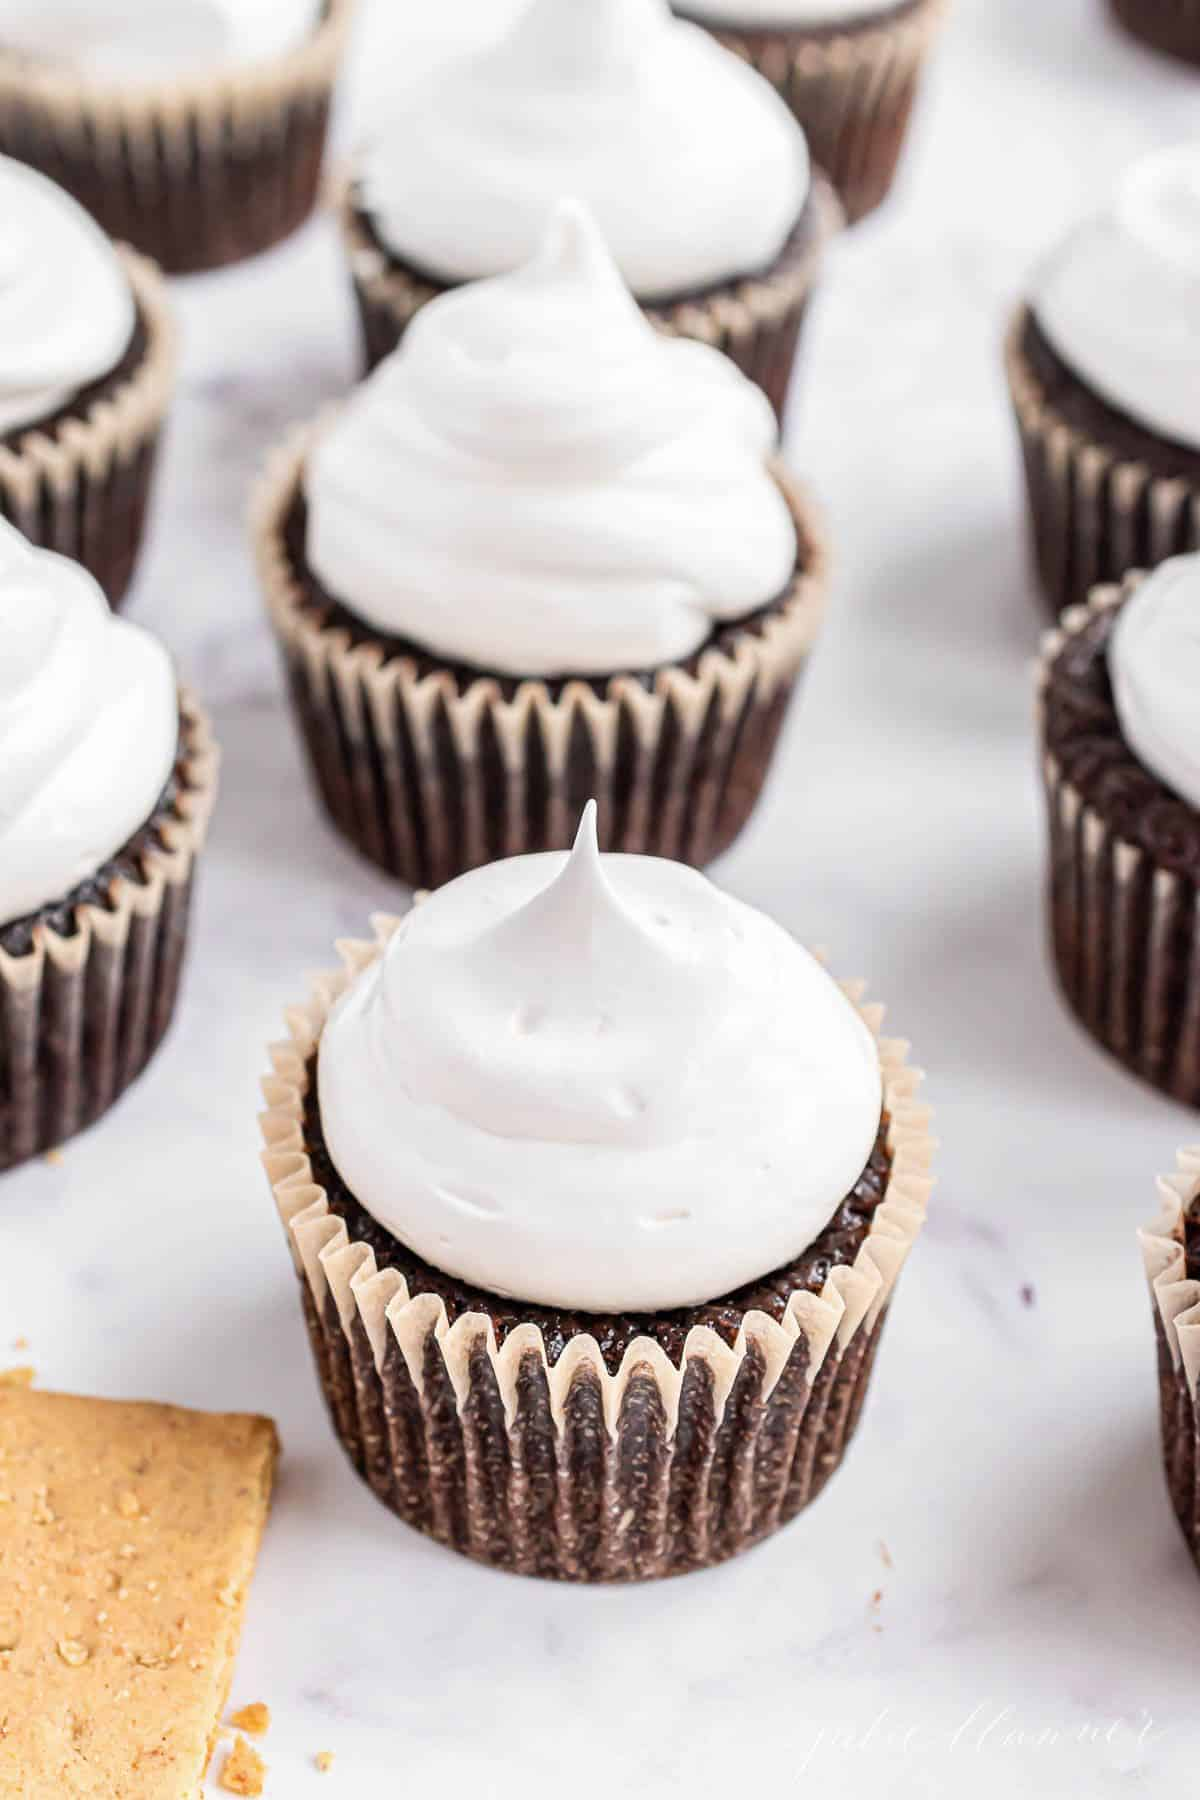 Chocolate cupcakes on a white marble surface, topped with marshmallow frosting.